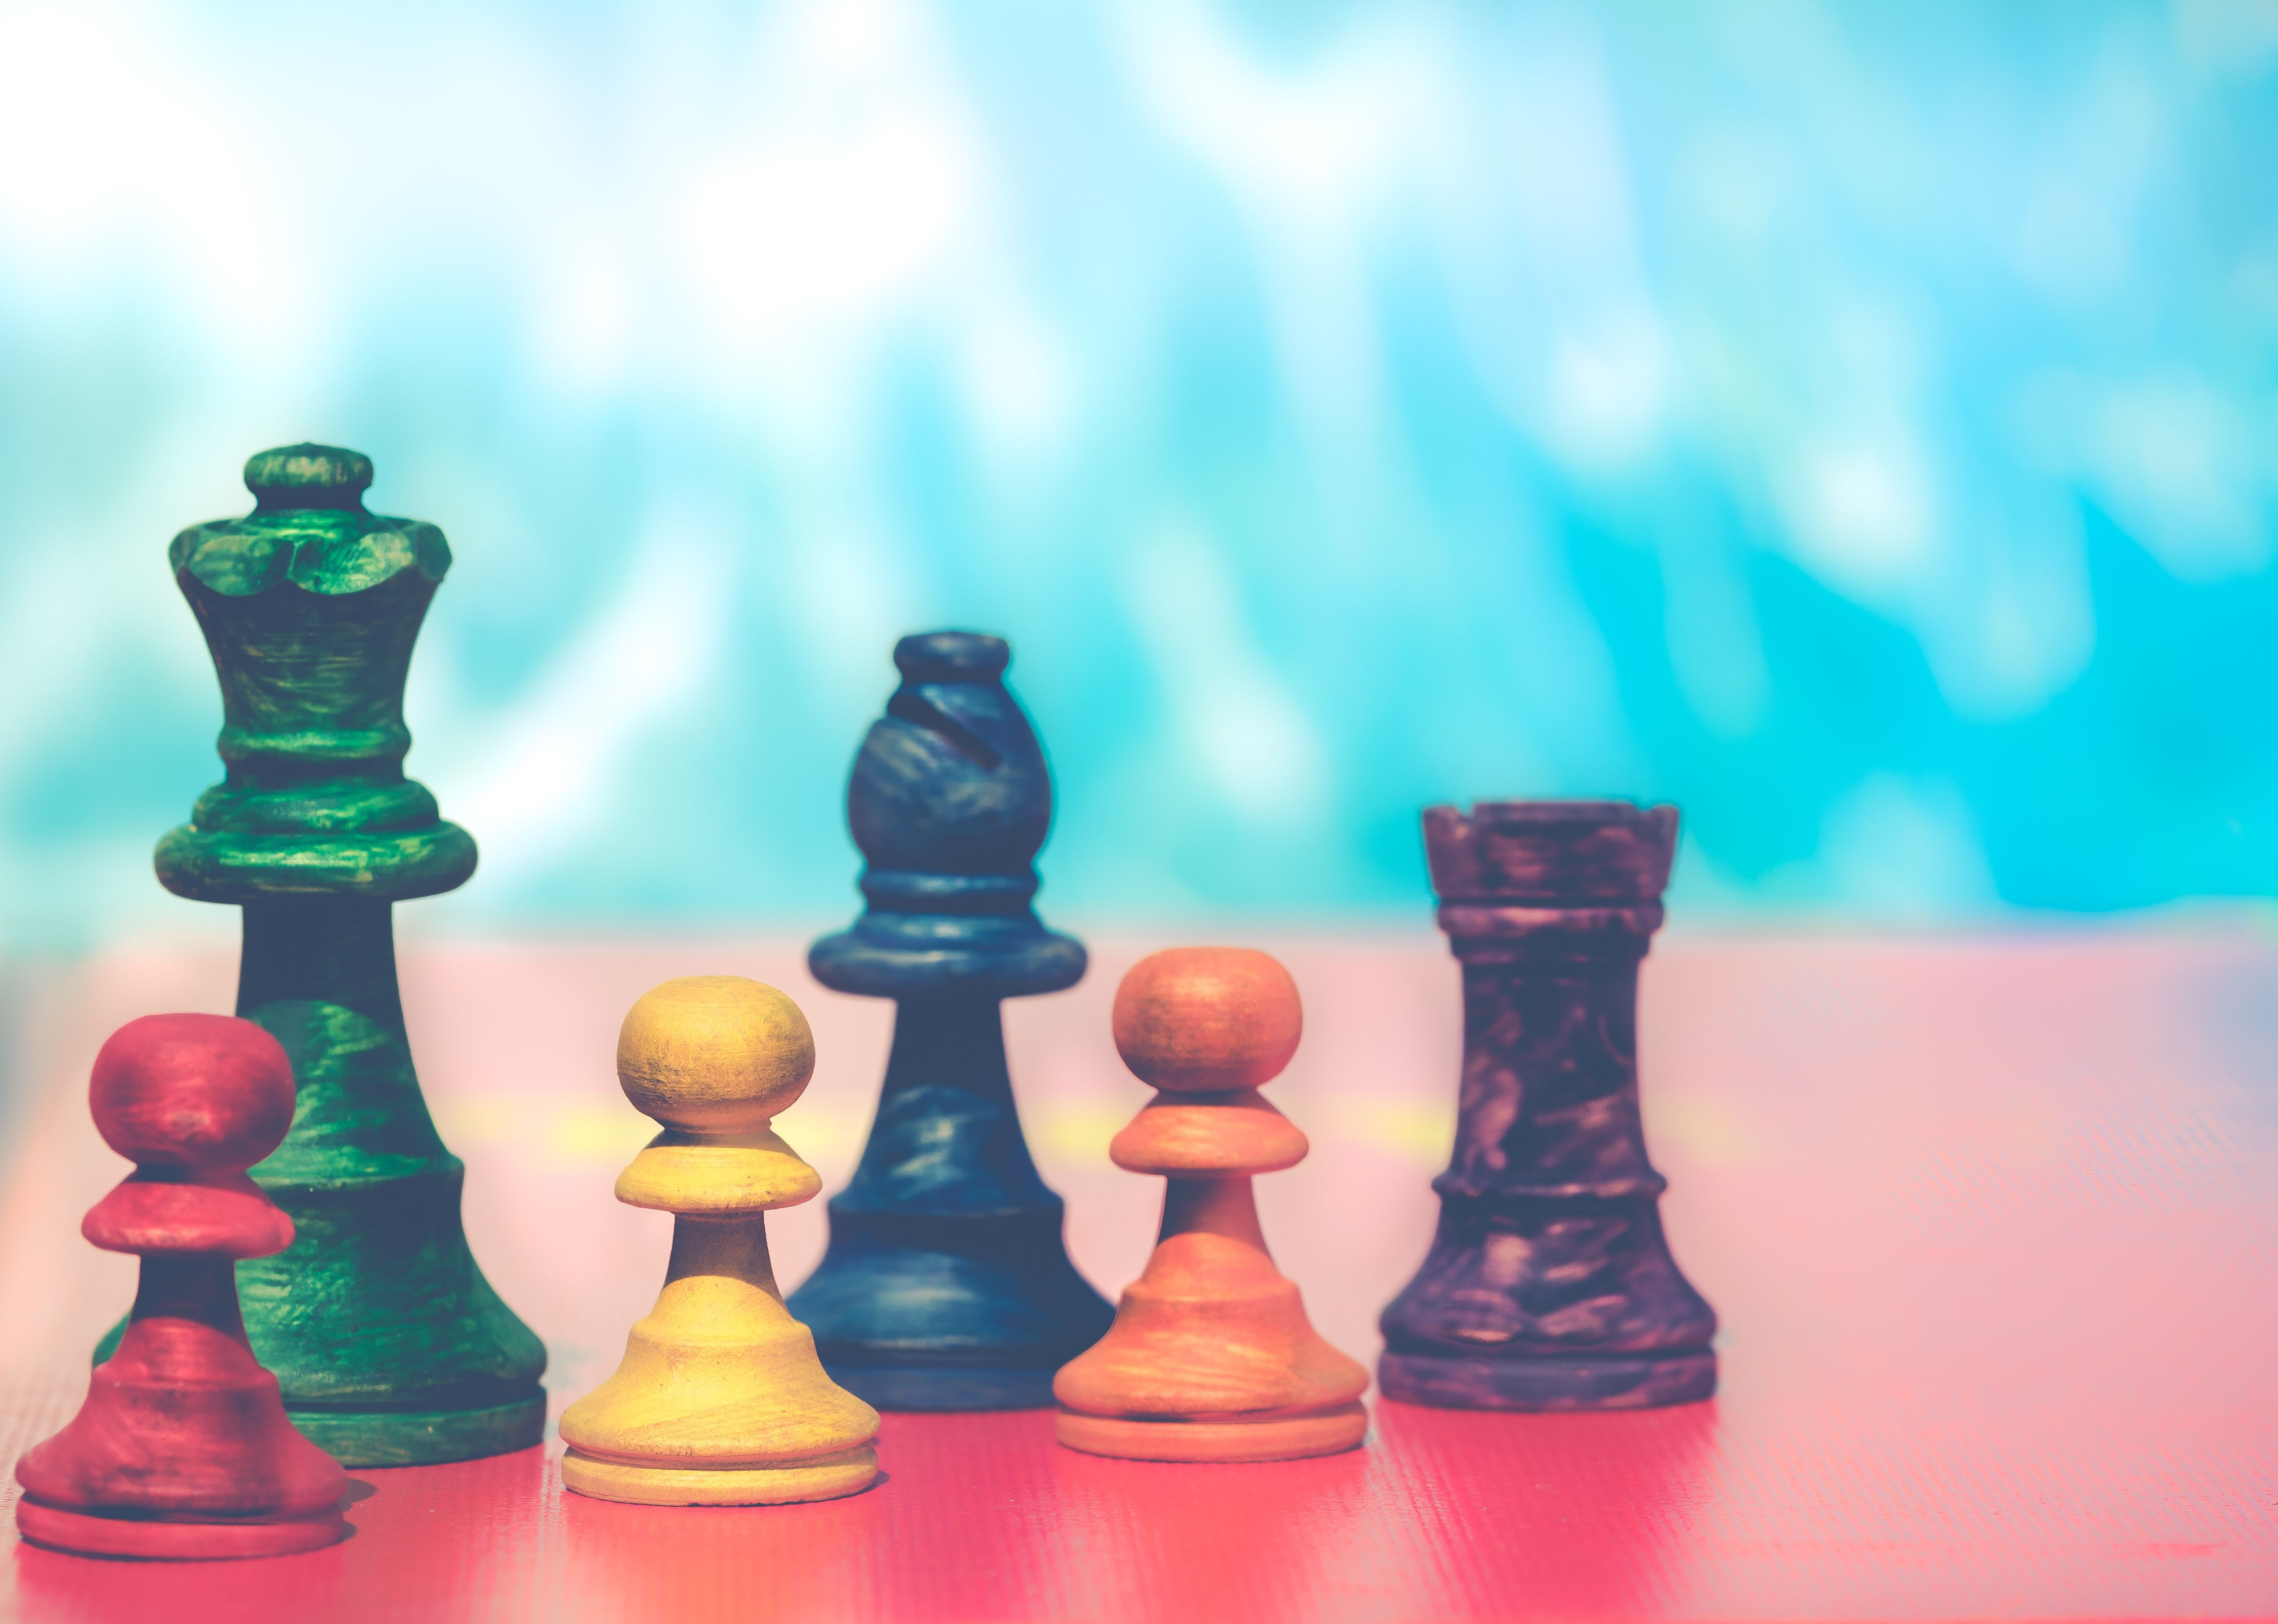 Wallpapers organization, games, Board game, chessboard